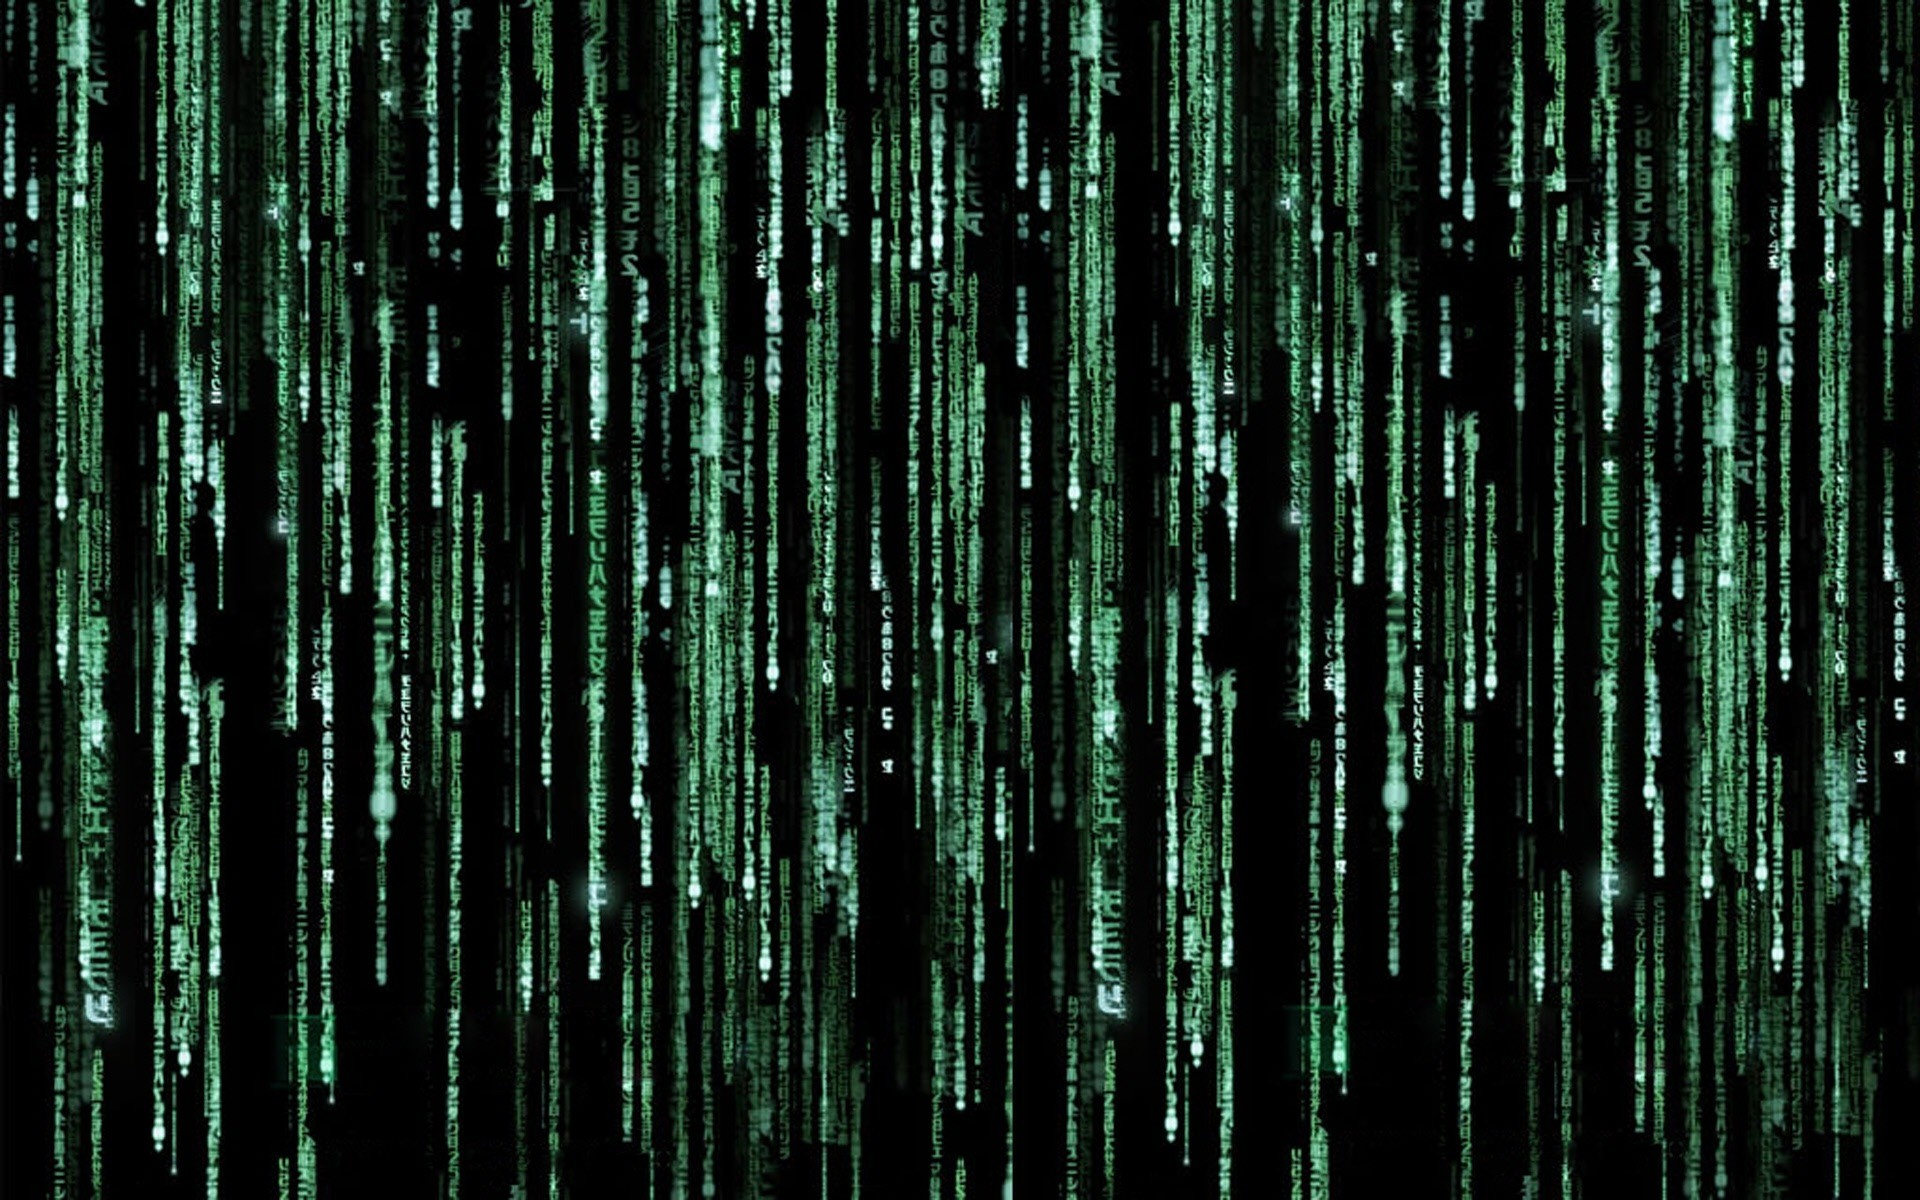 1920x1200 matrix-moving-high-resolution-wallpaper-xjgs-hd-matrix-wallpaper-moving- animated-android-iphone-windows-7-gif-5-4-download